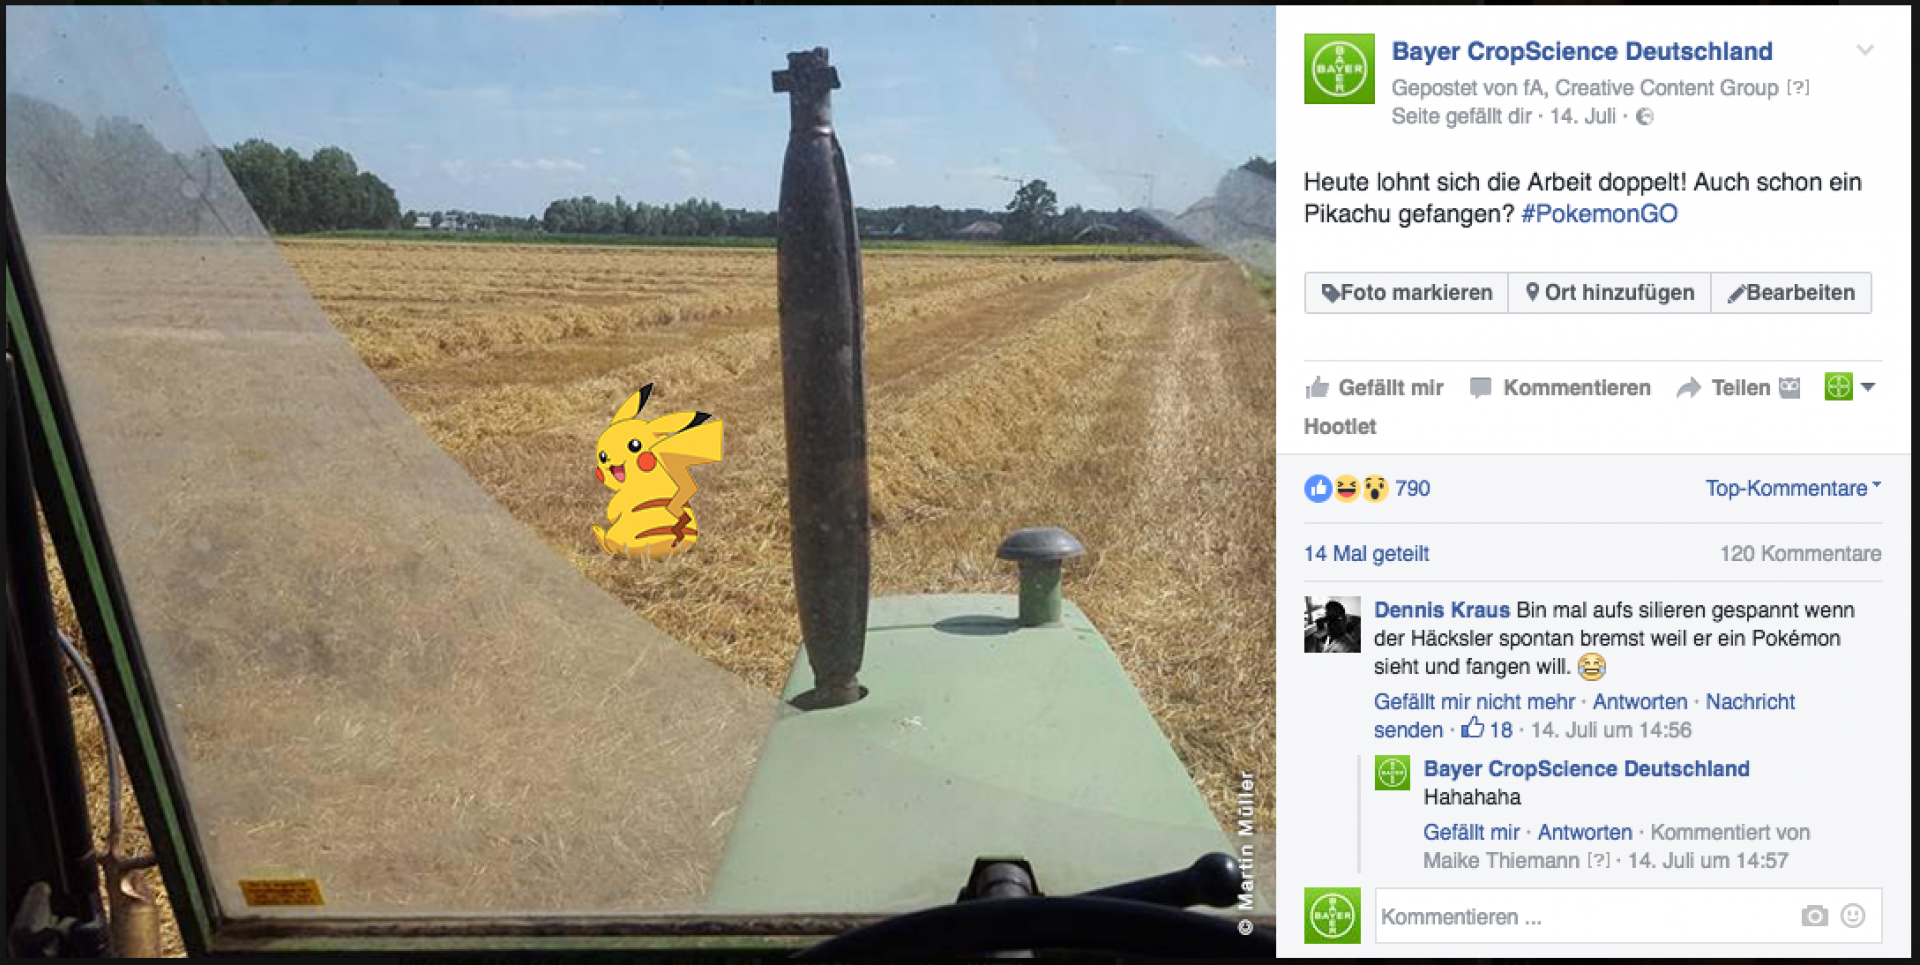 Experience agriculture digitally